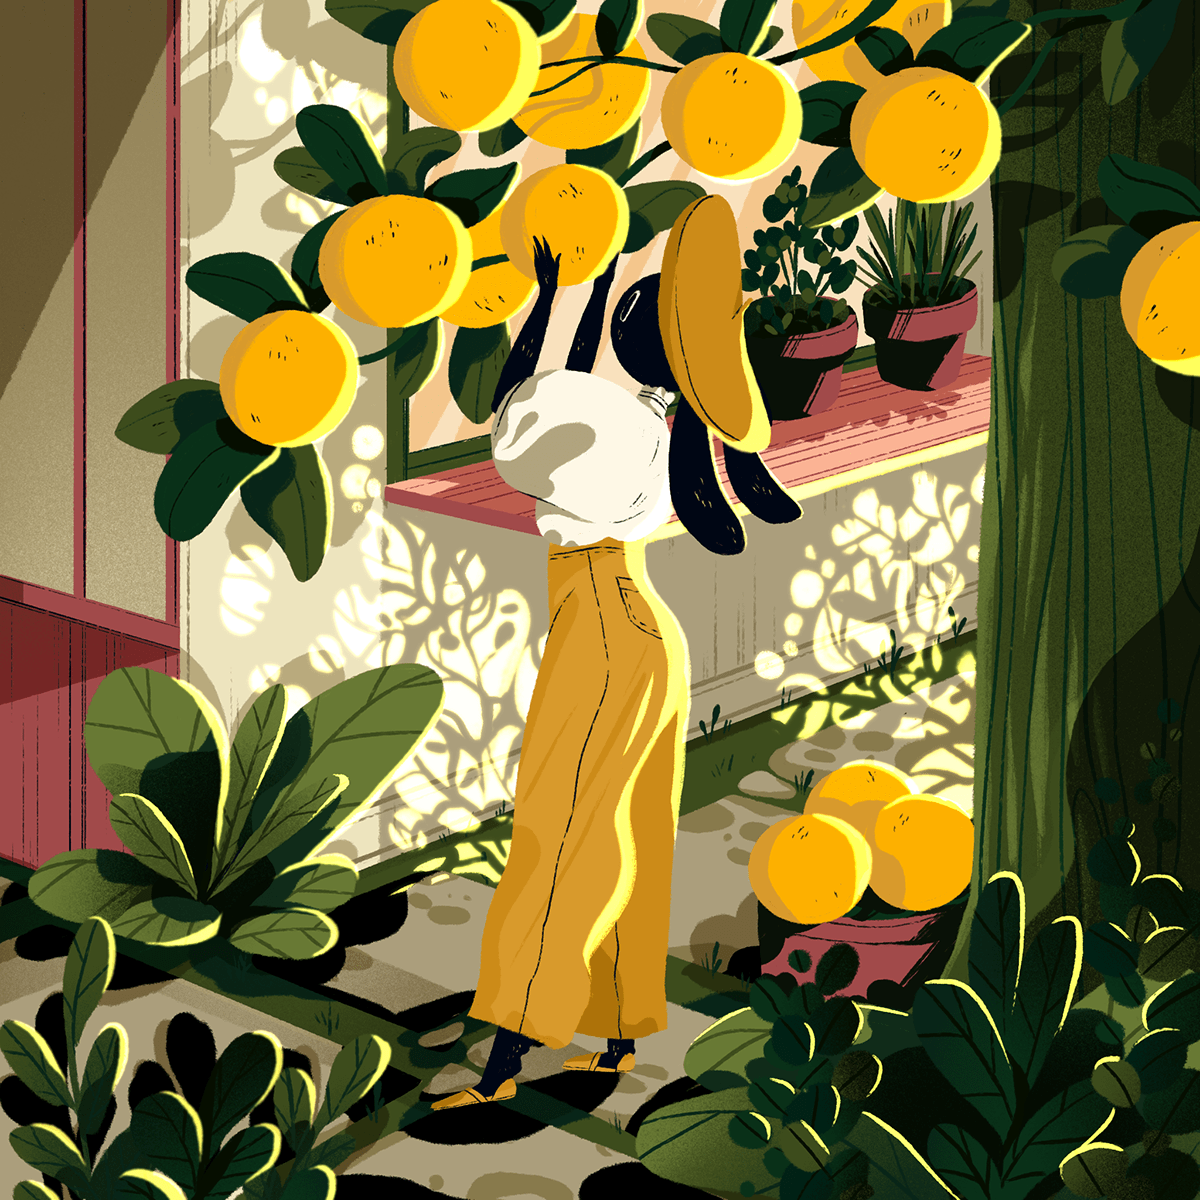 Jelena Hallmann-Haeschke tells the story of the adventures of two bunnies vacationing in the Mediterranean 🐰 — see more character illustrations >